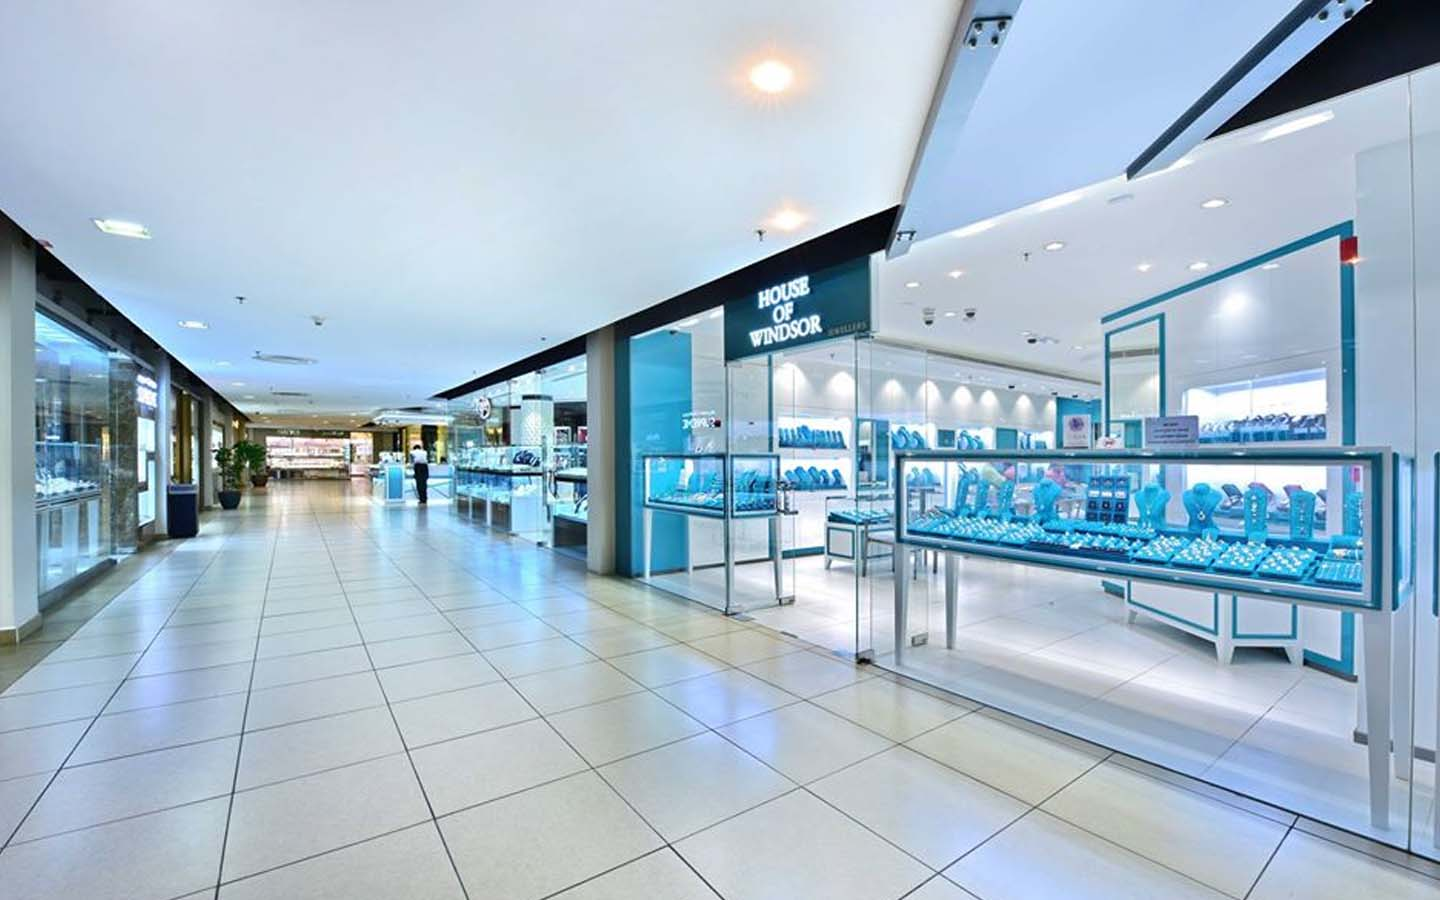 House of Windsor jewellery store at the Dubai Gold and Diamond Park